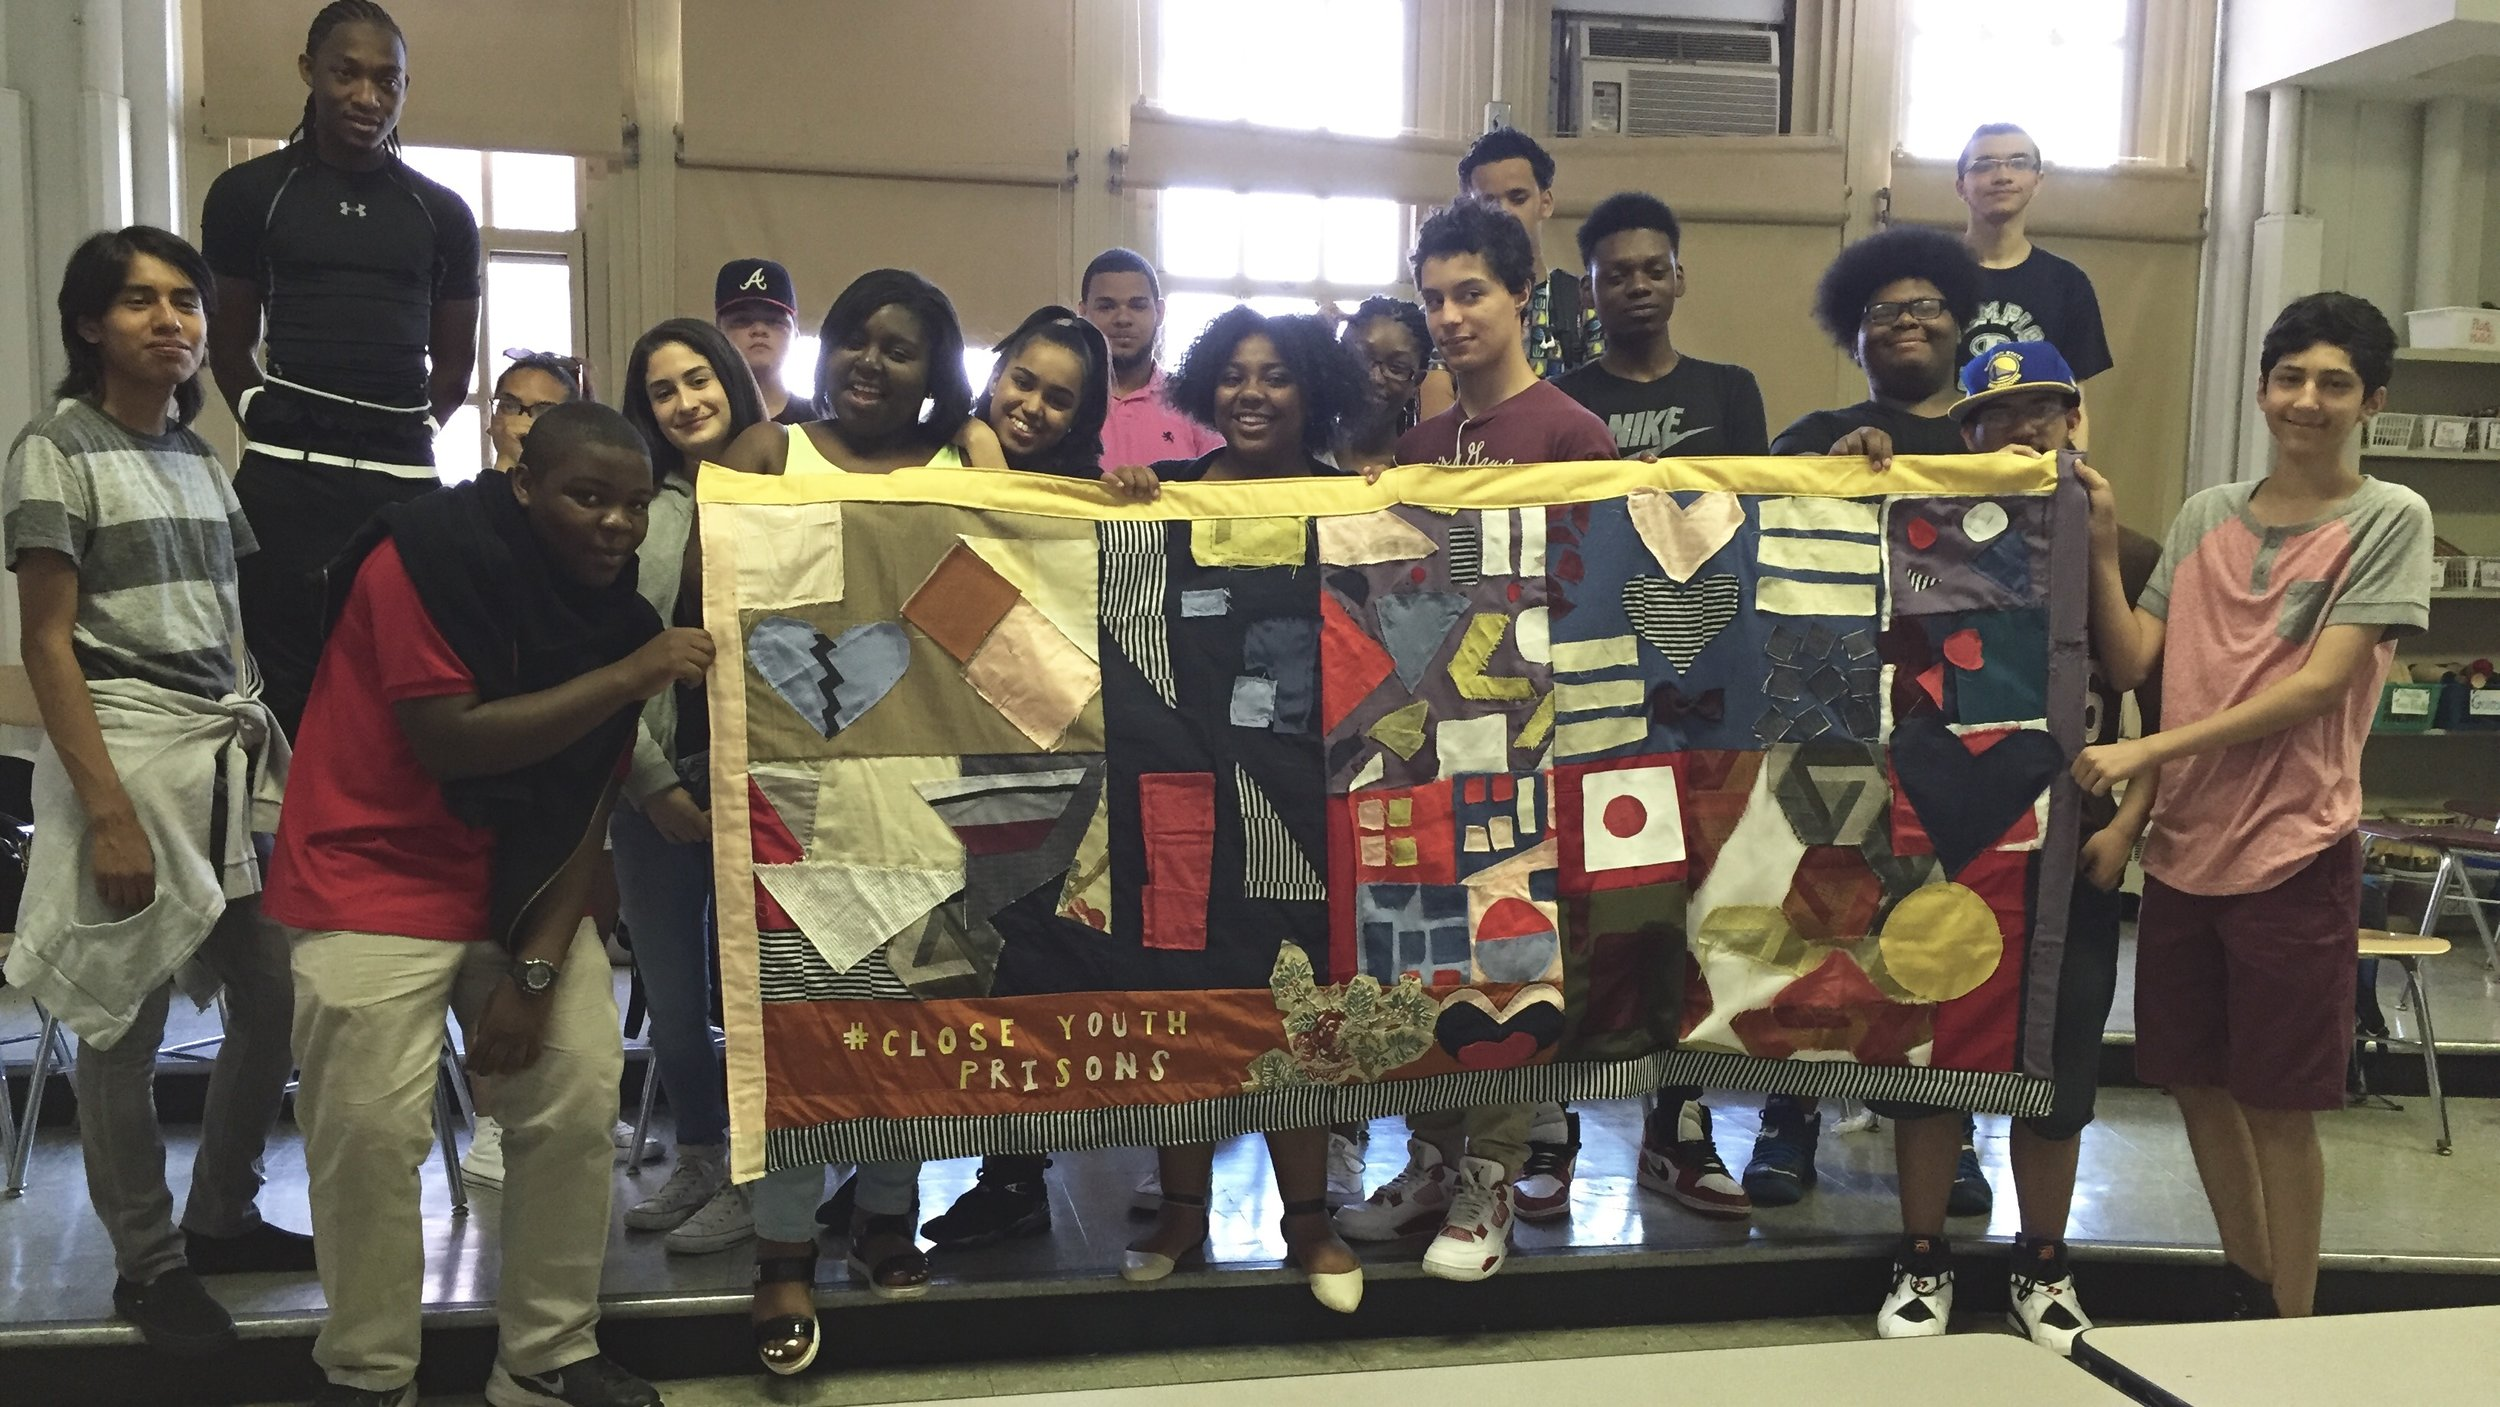 Students proudly presents their quilt to advocate for the closing of youth prisons.